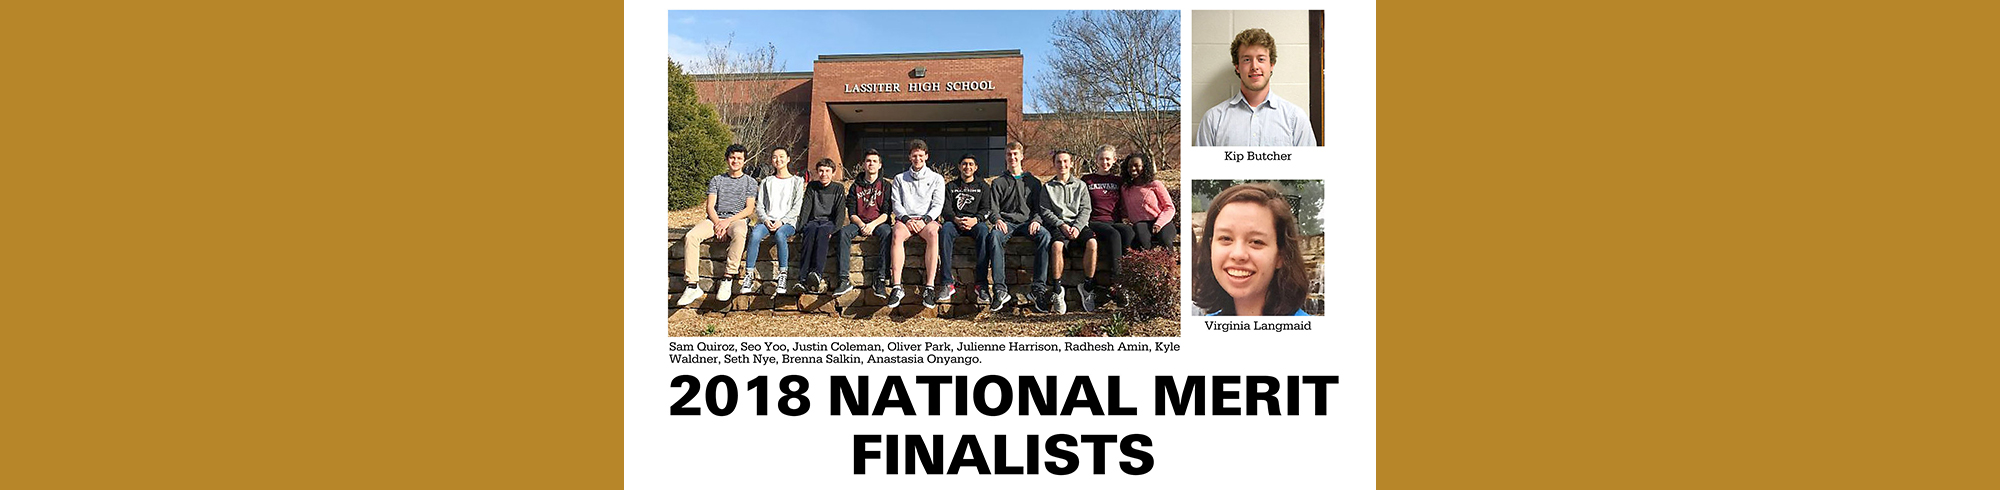 Lassiter High School 2018 National Merit Finalists